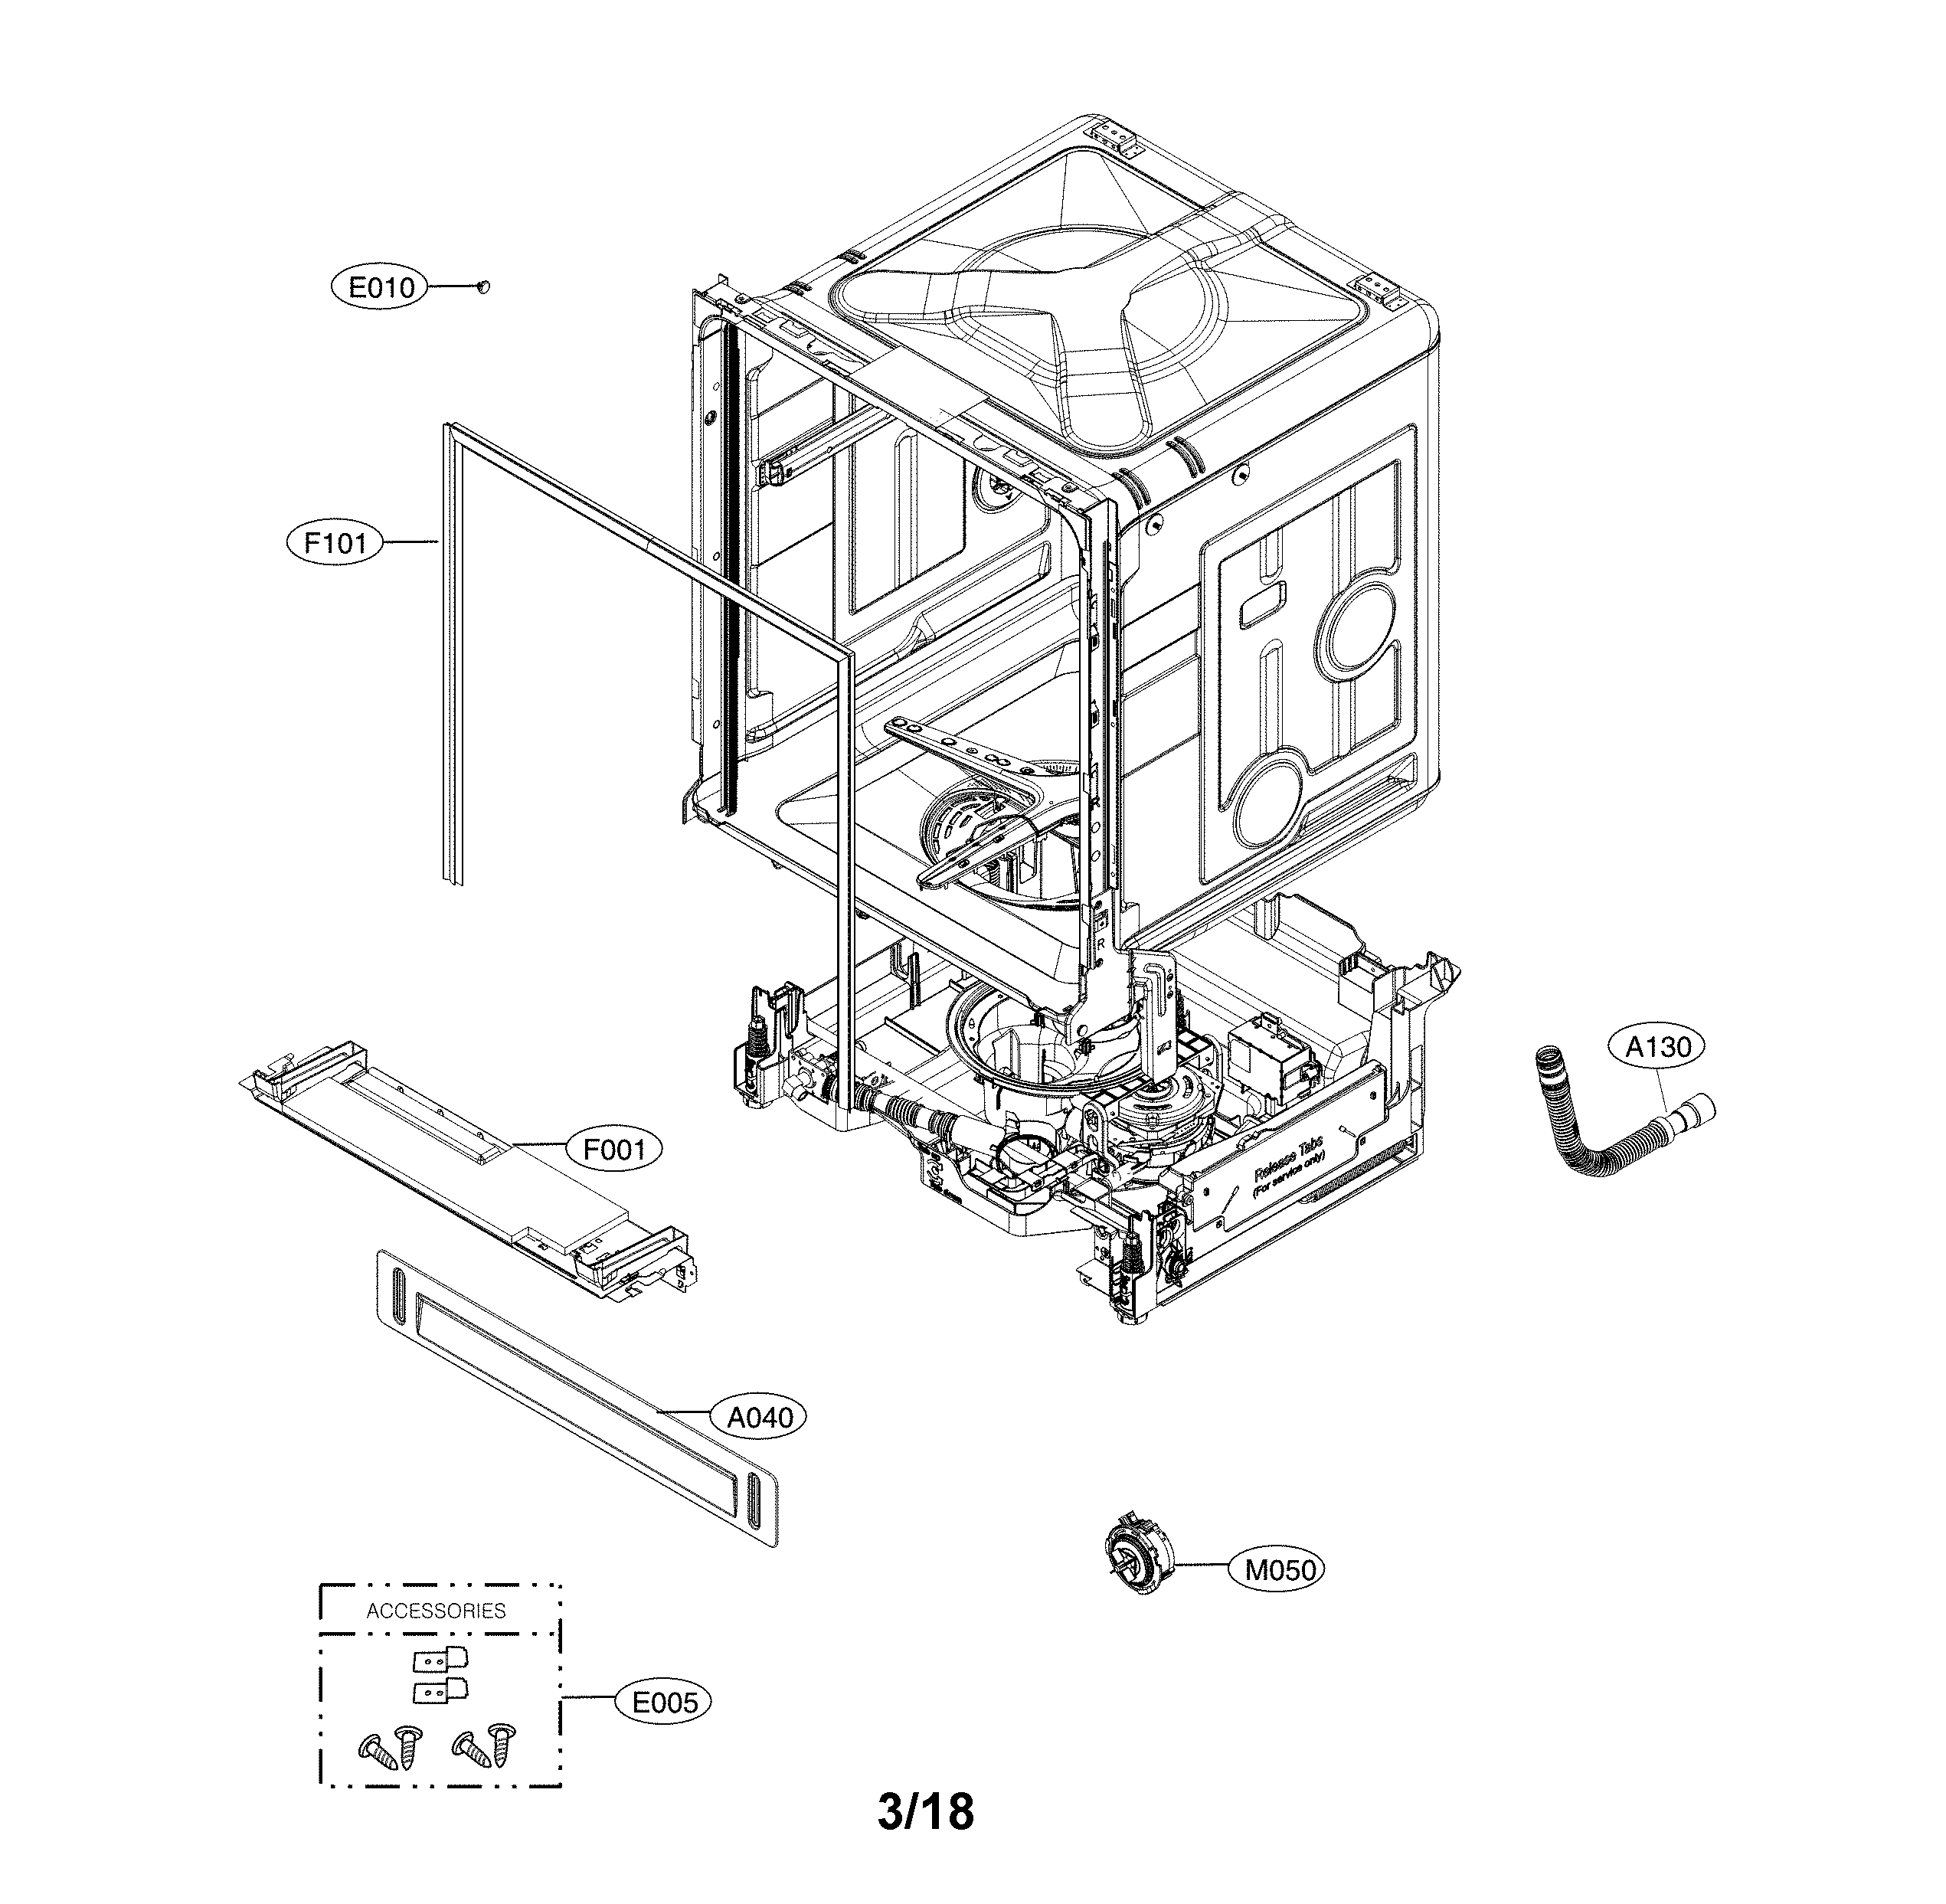 LG LDP6797WW/00 exploded view parts diagram